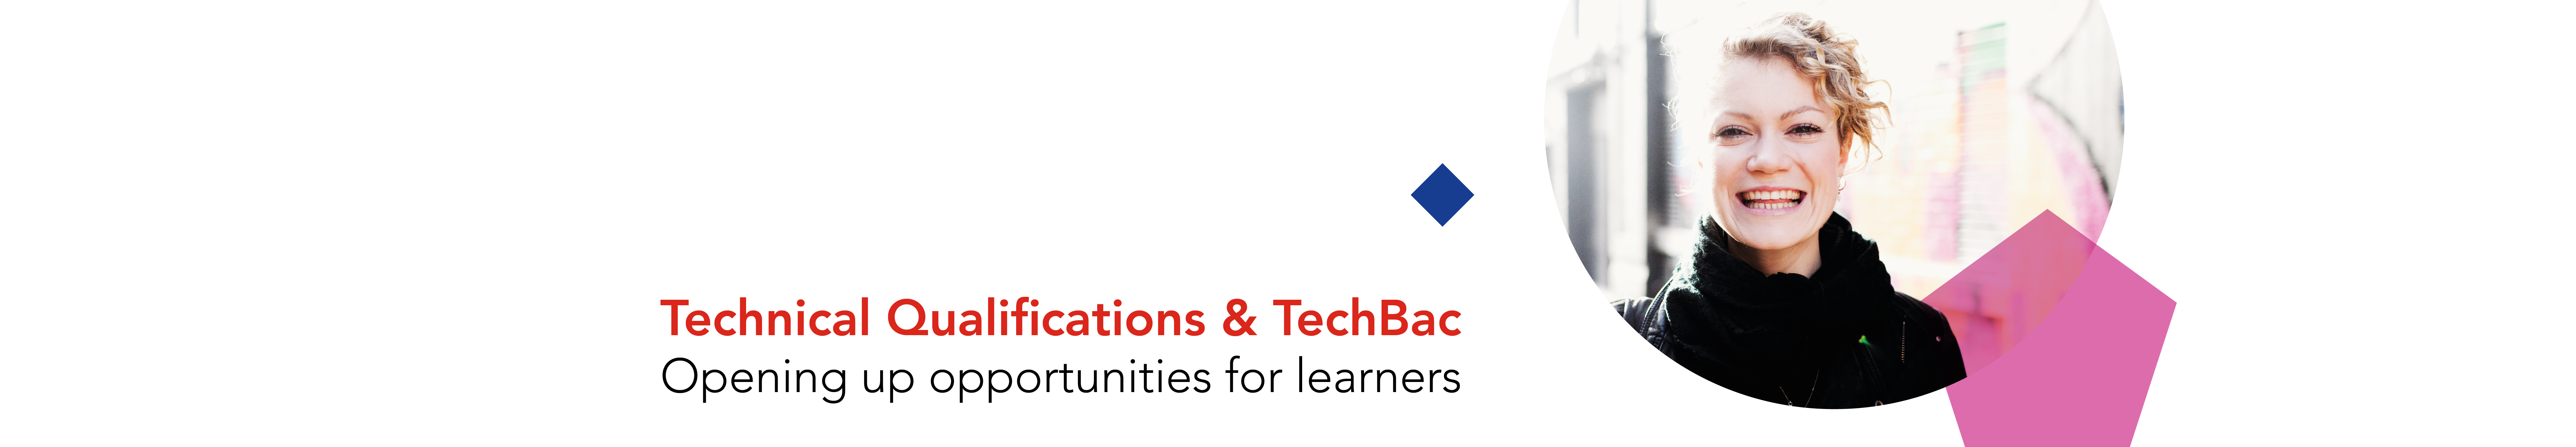 Techbac new banner